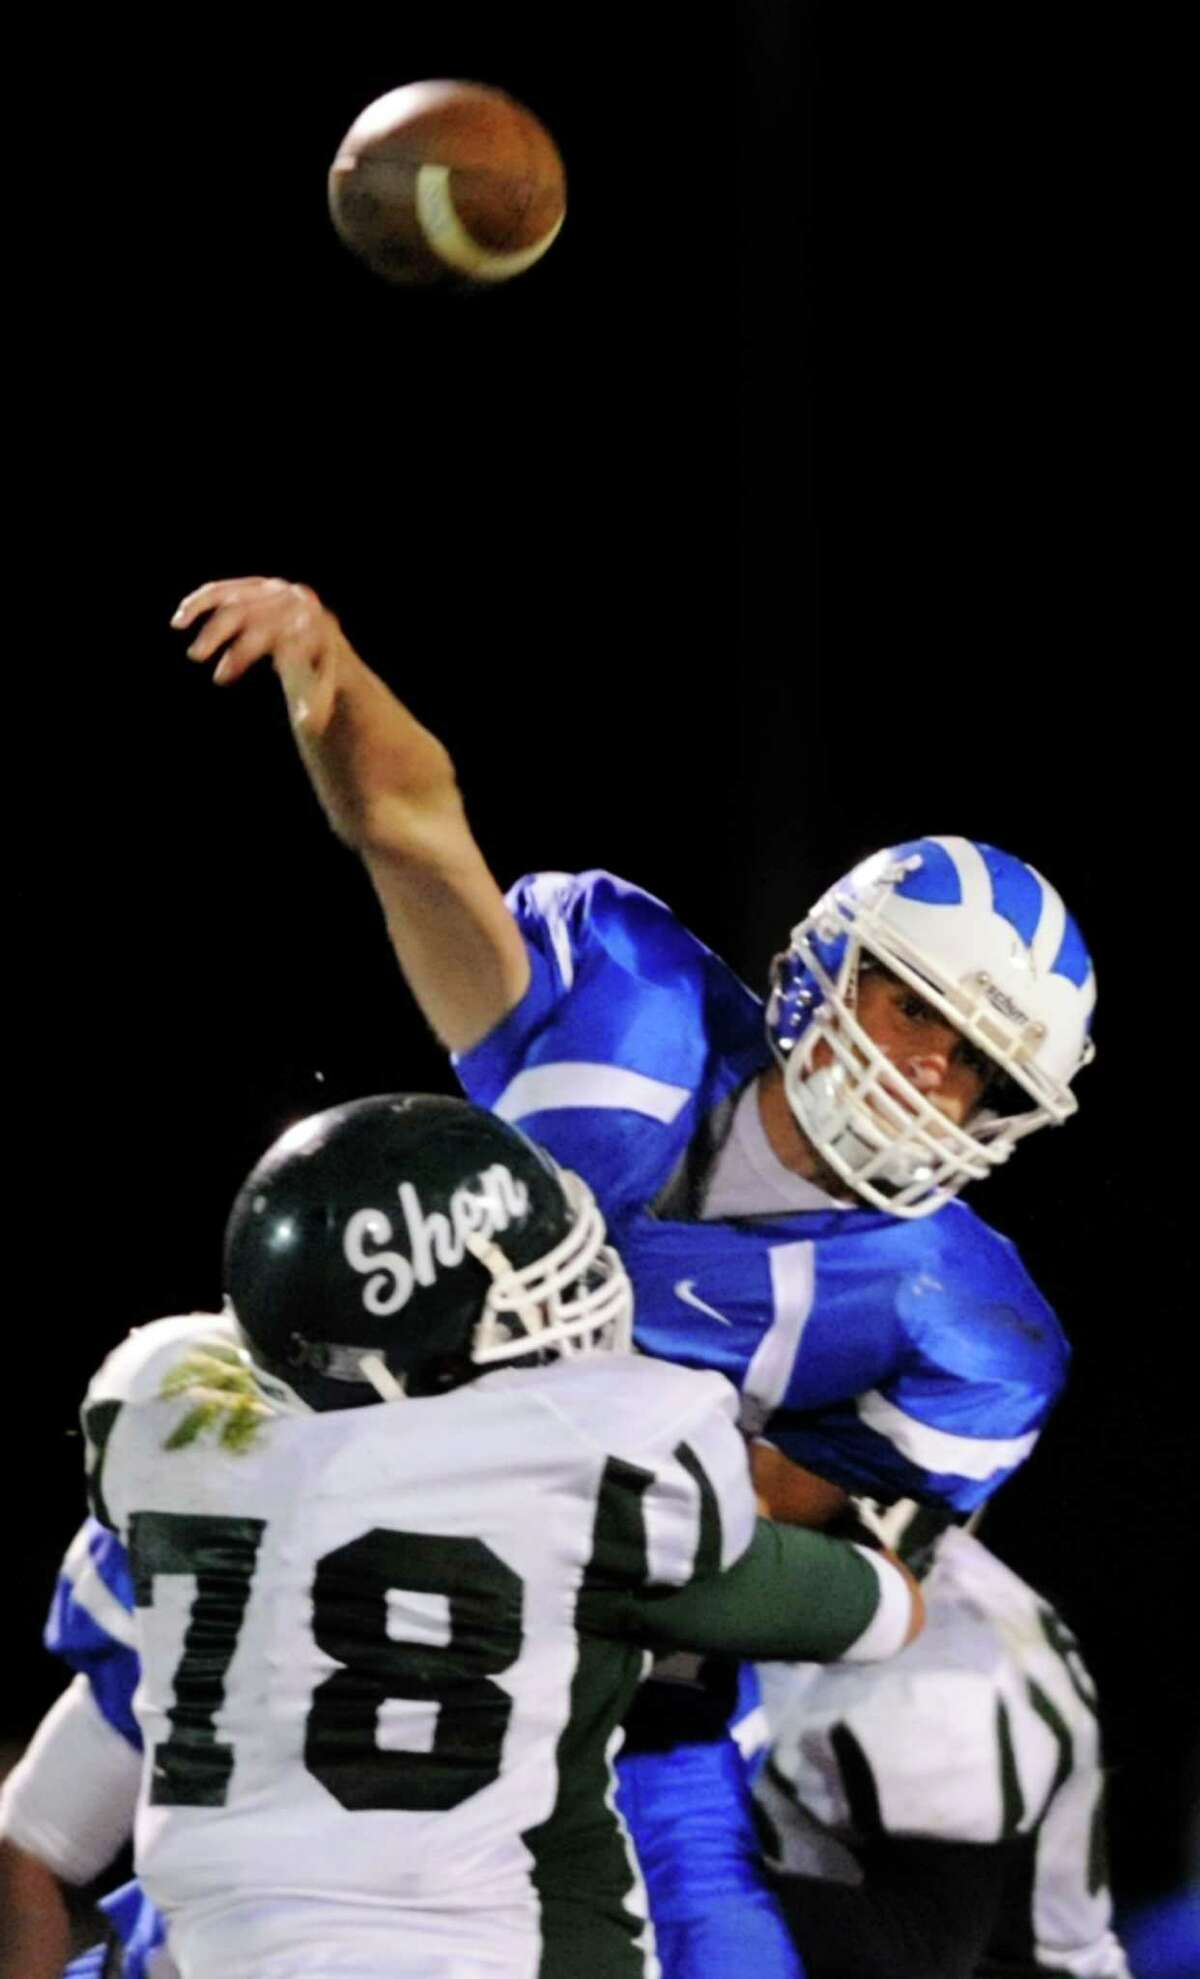 Shaker's Matt Woods throws a pass during their Class AA quarterfinal football game against Shenendehowa on Friday, Oct. 25, 2013, at Shaker High in Latham, N.Y. (Cindy Schultz / Times Union)